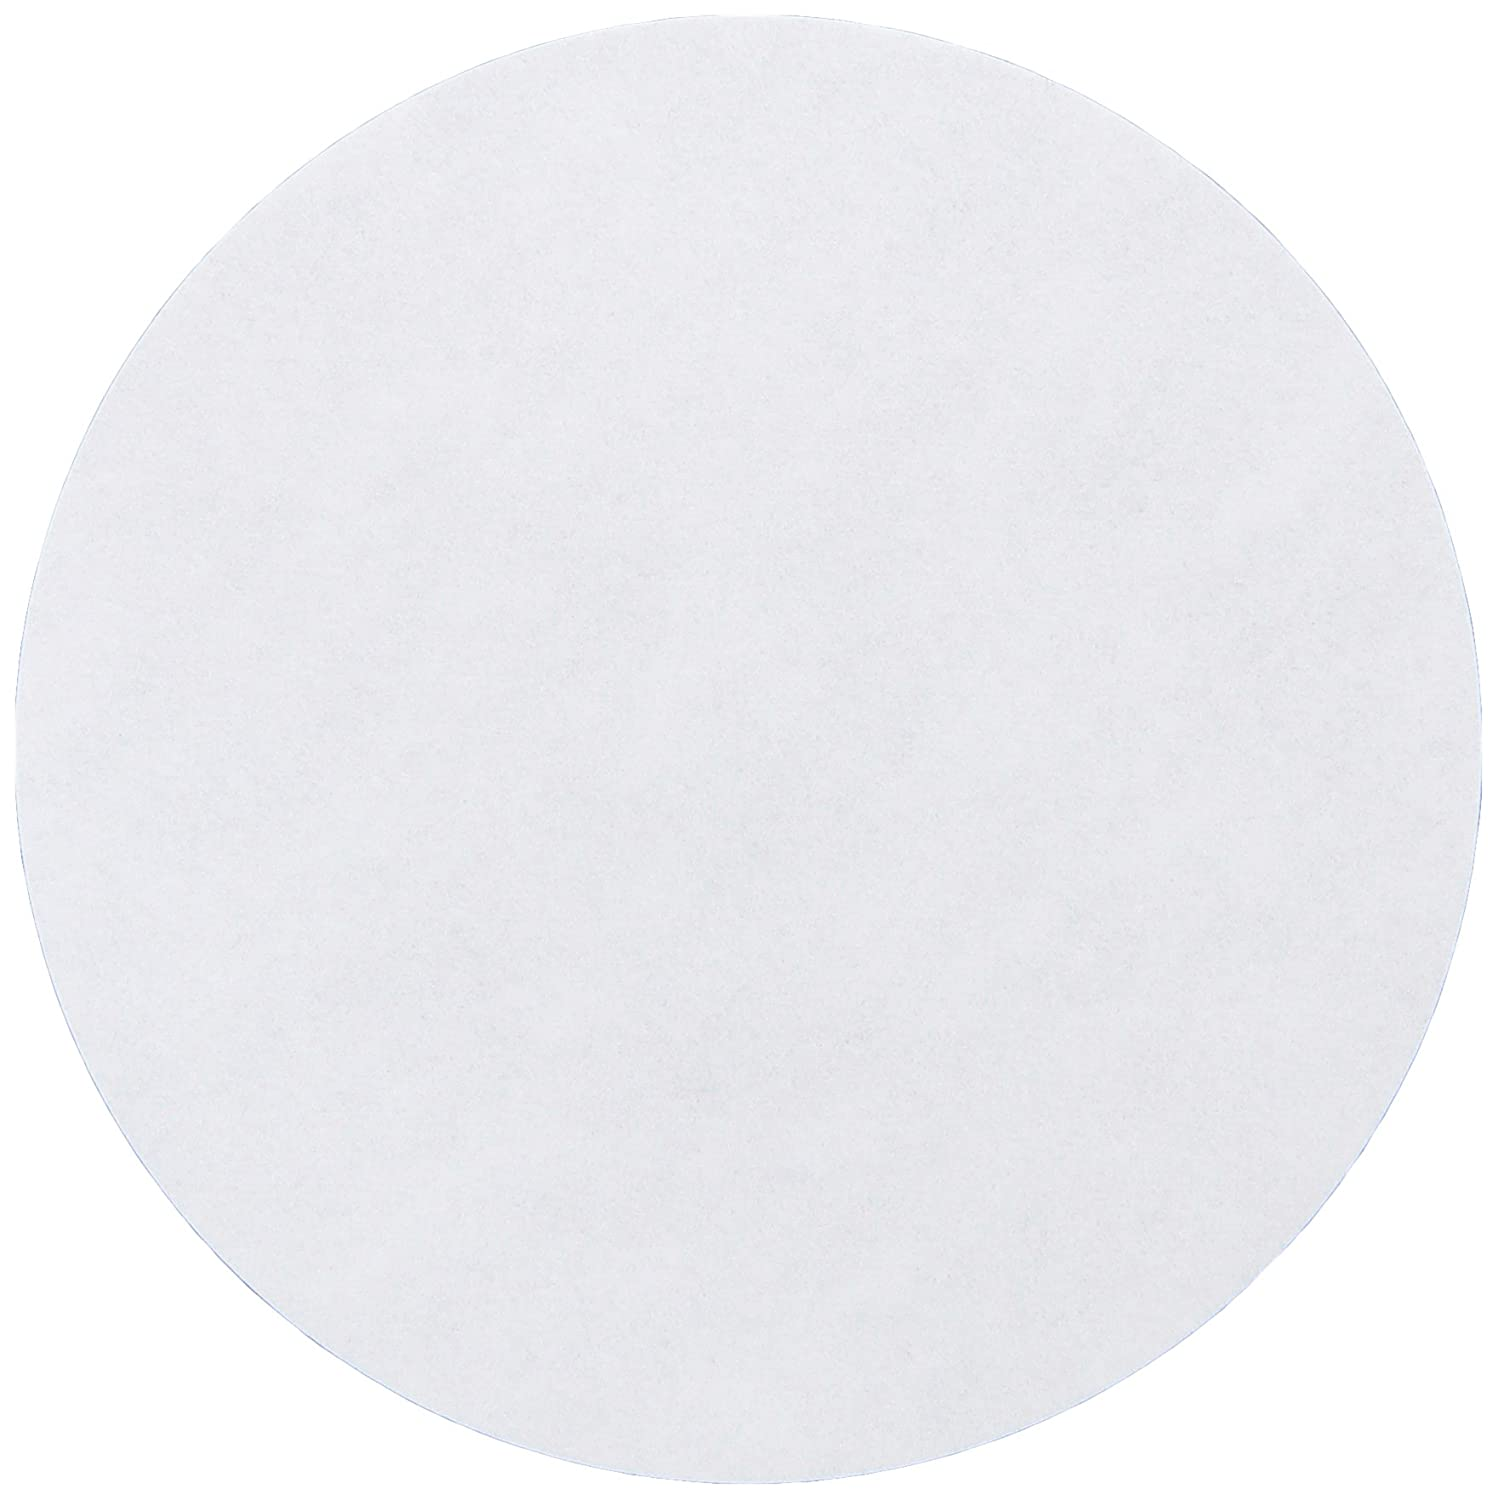 Whatman 4712B30PK 1001110 Grade 1 Qualitative Filter Paper, 110 mm Thick and Max Volume 571 ml/m (Pack of 100) GE Healthcare